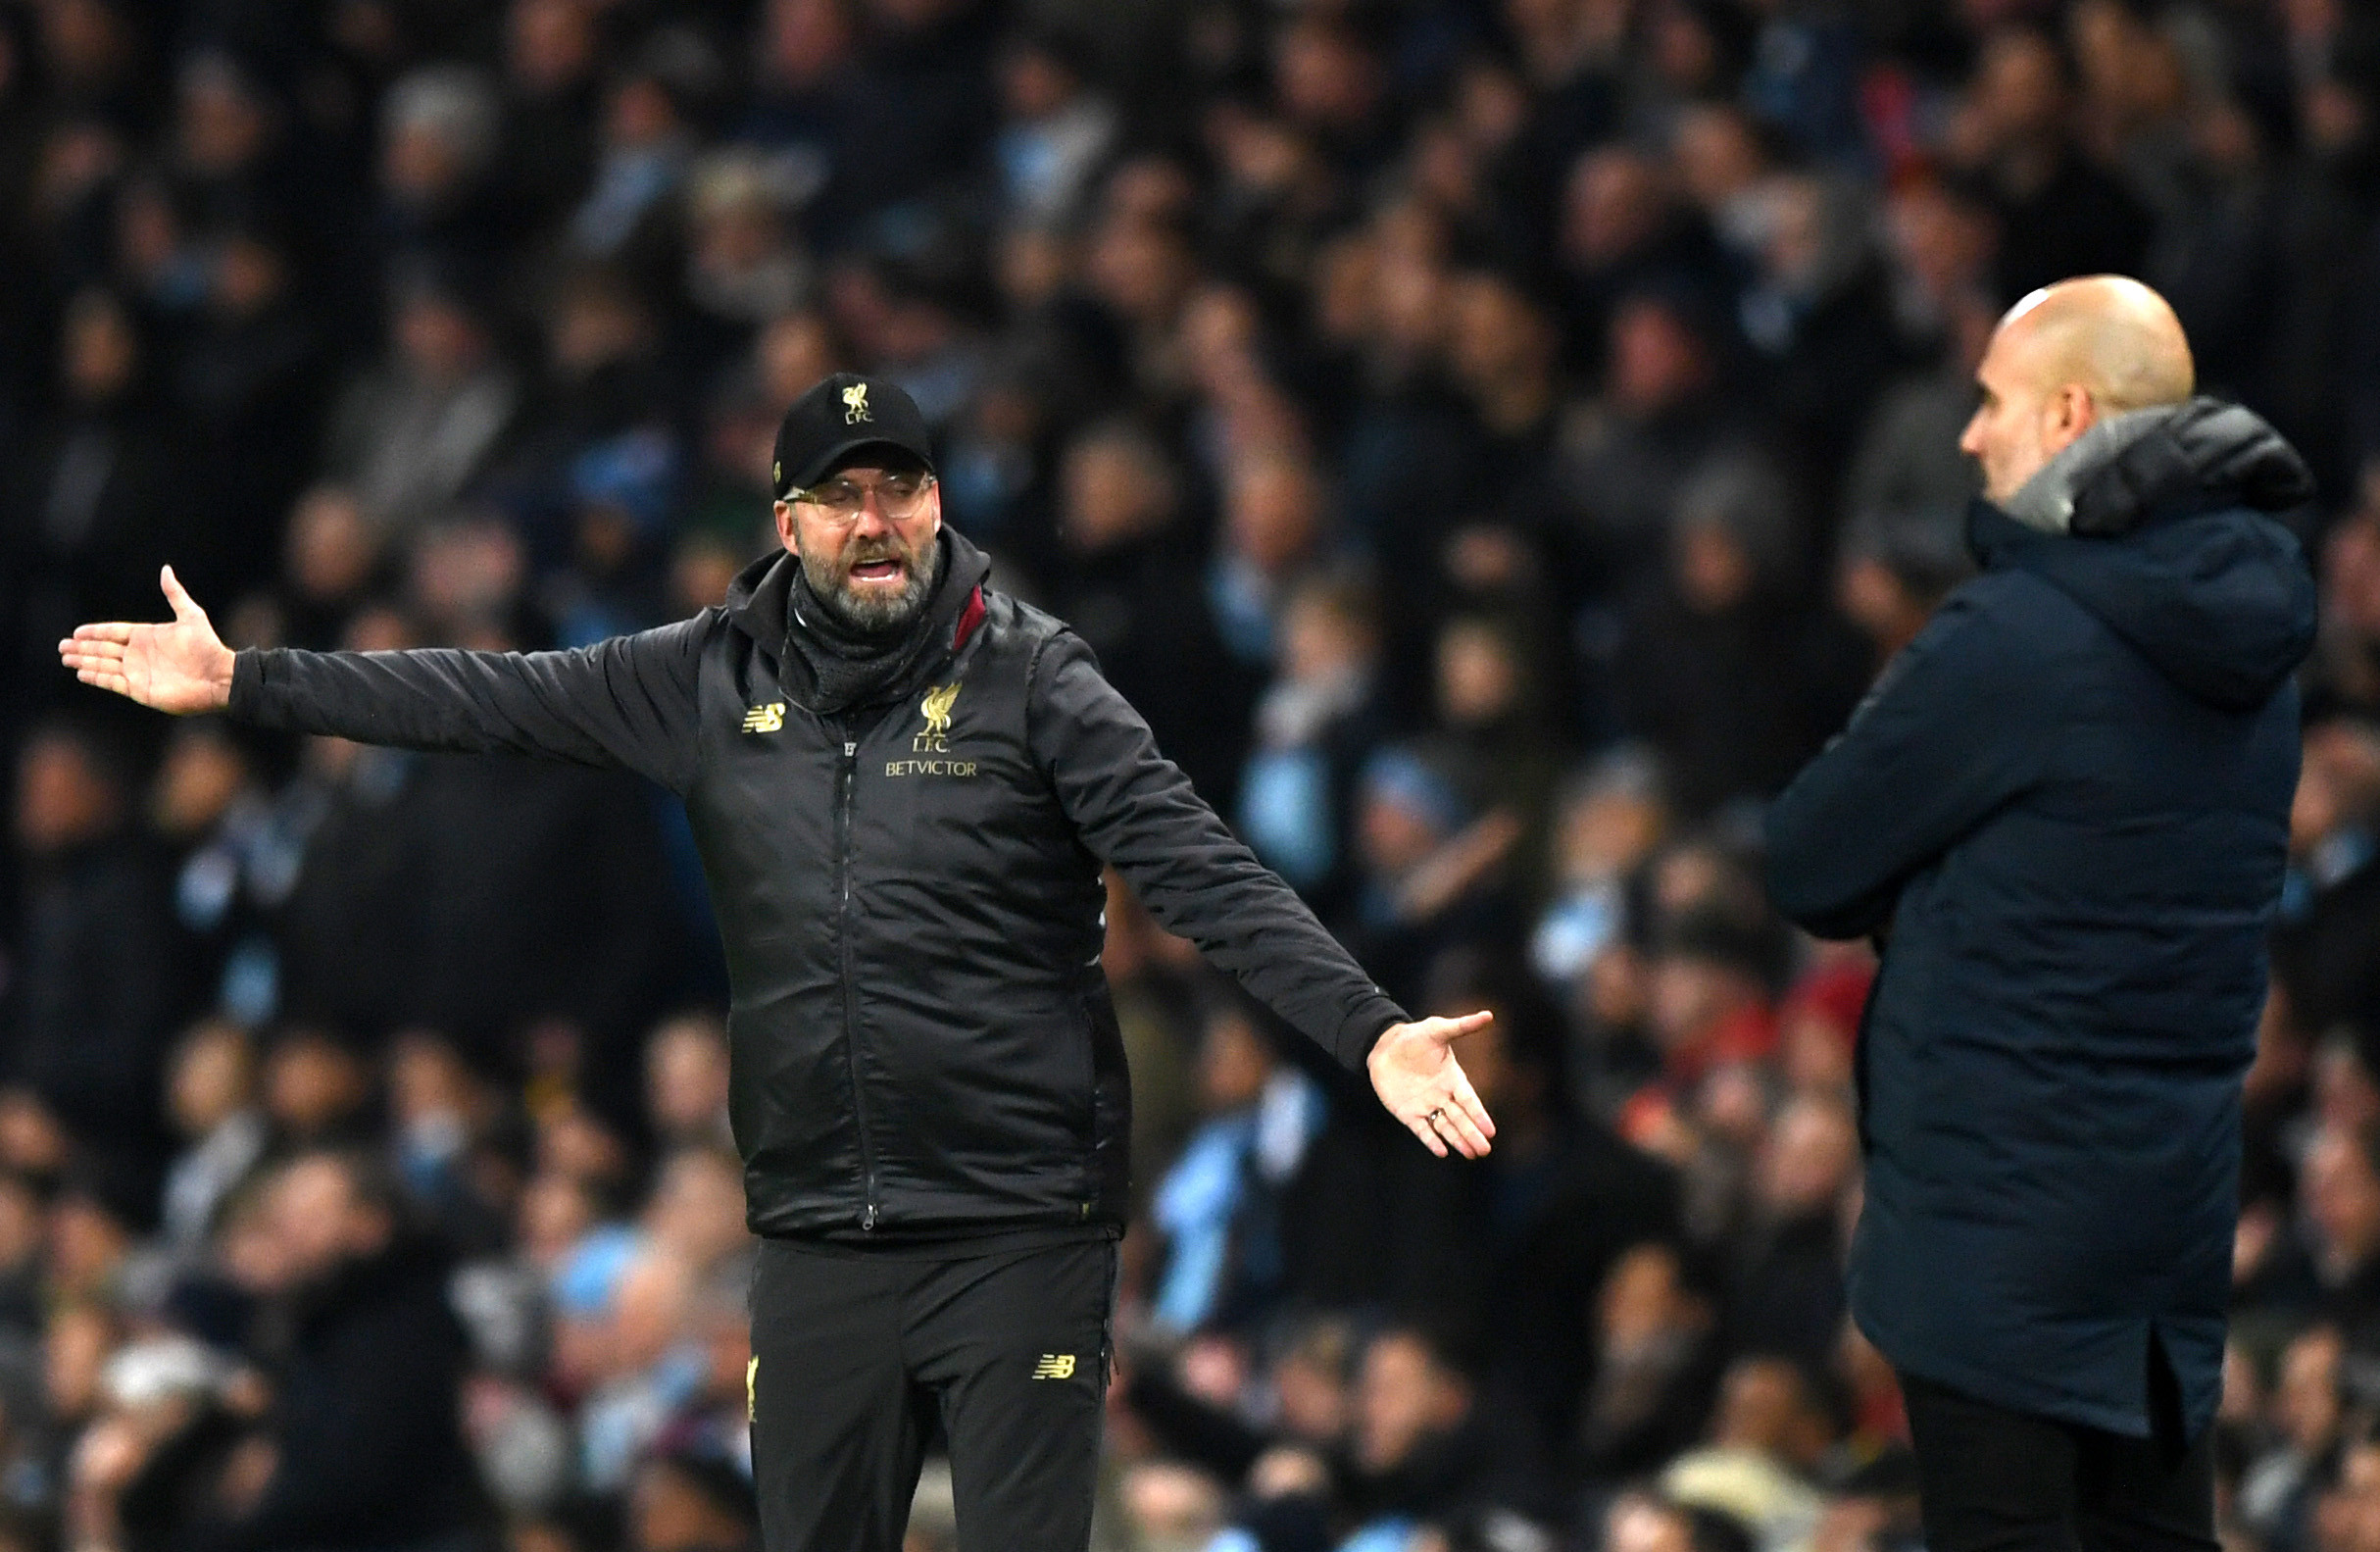 Klopp and Guardiola have traded verbal barbs before the Anfield clash